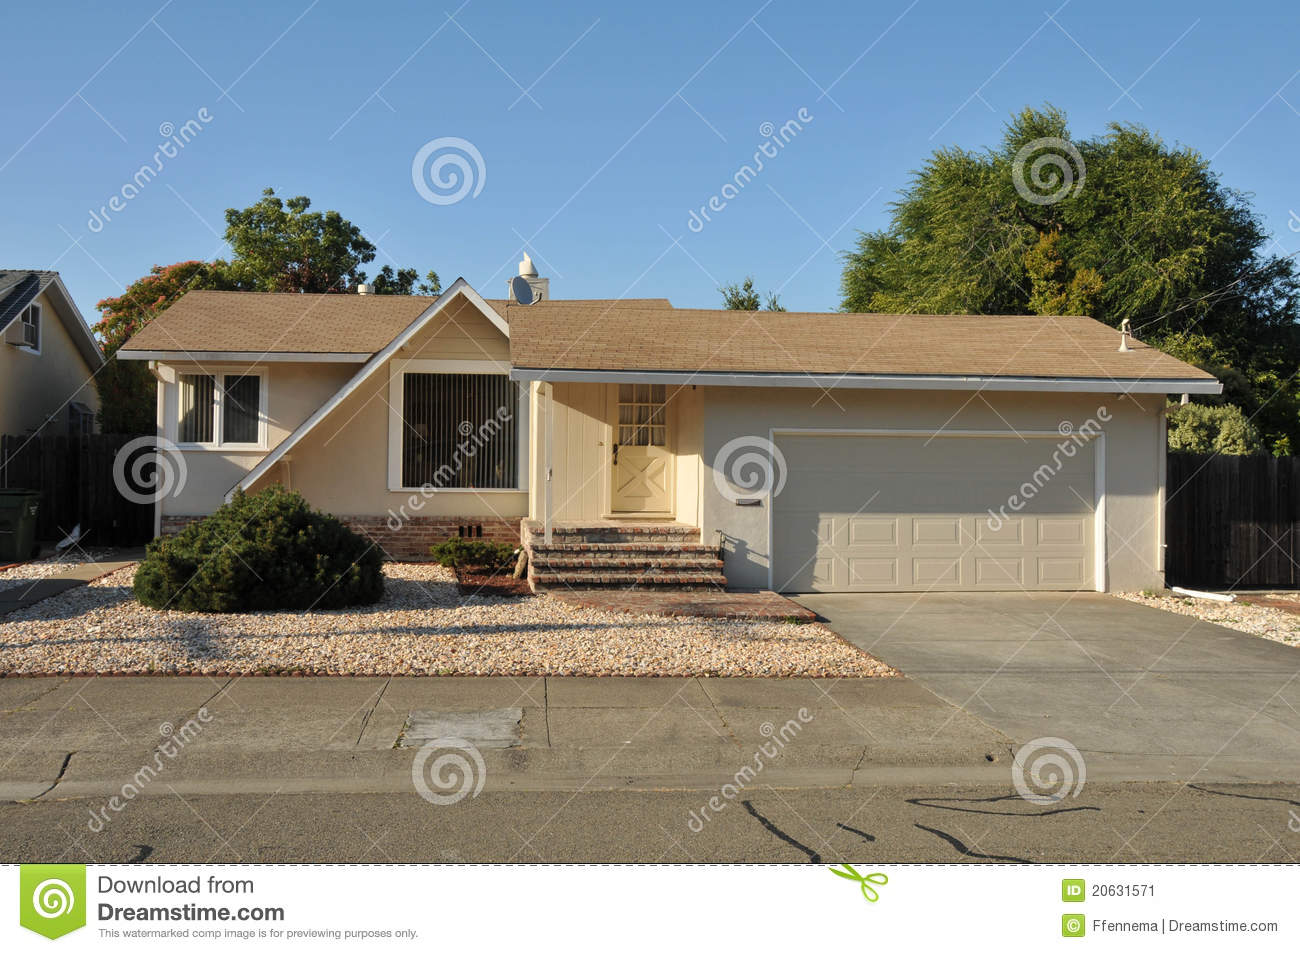 Single Family House One Story With Driveway Stock Image Image 20631571